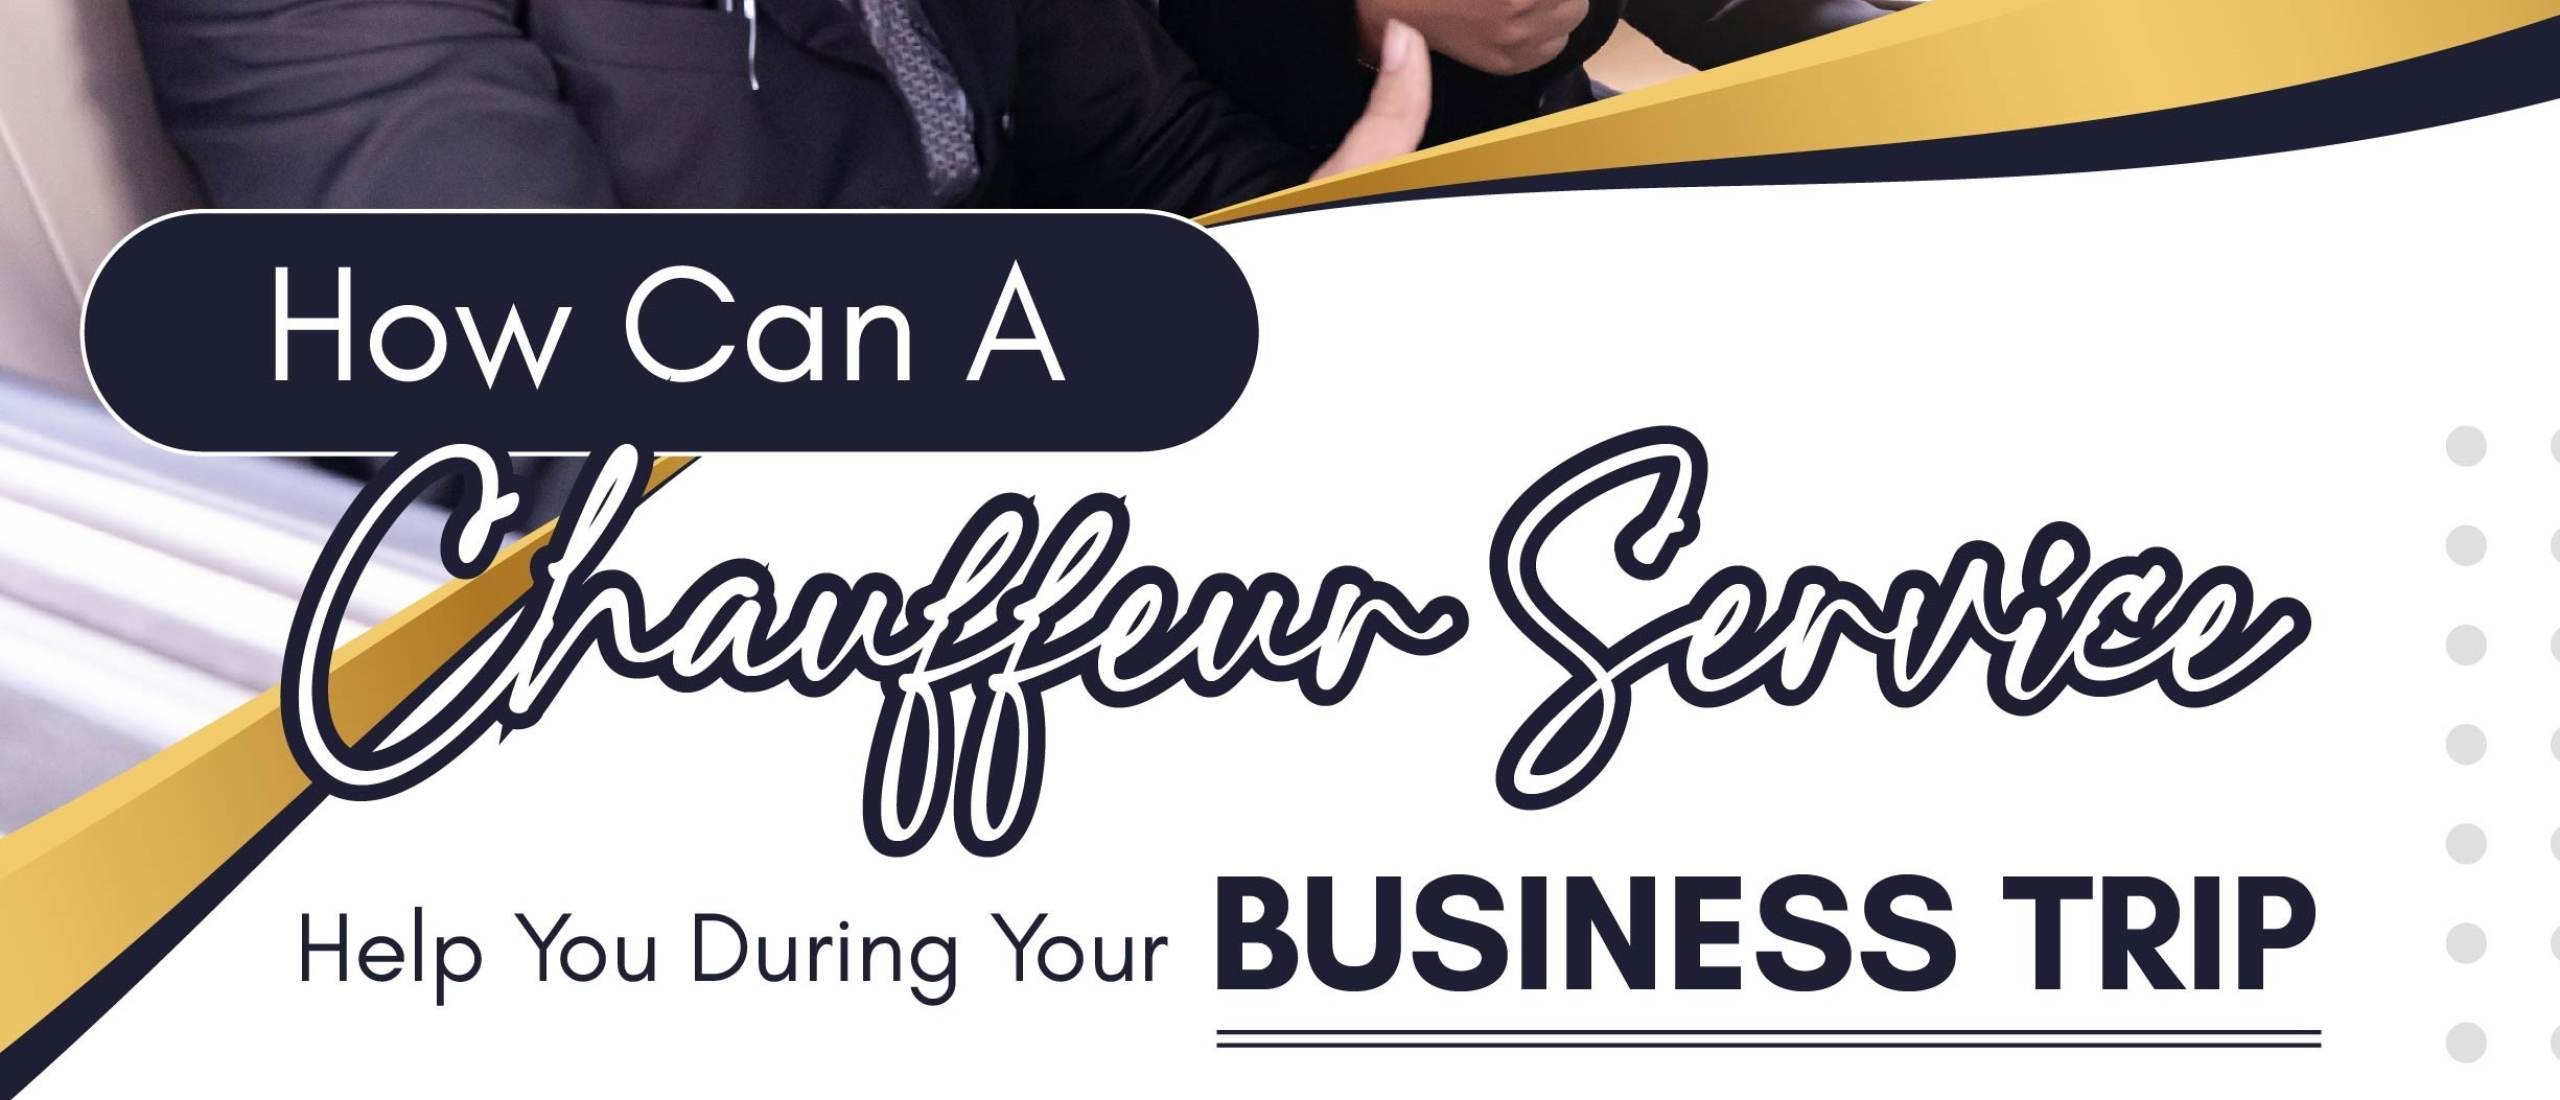 How Can a Chauffeur Service Help You During Your Business Trip